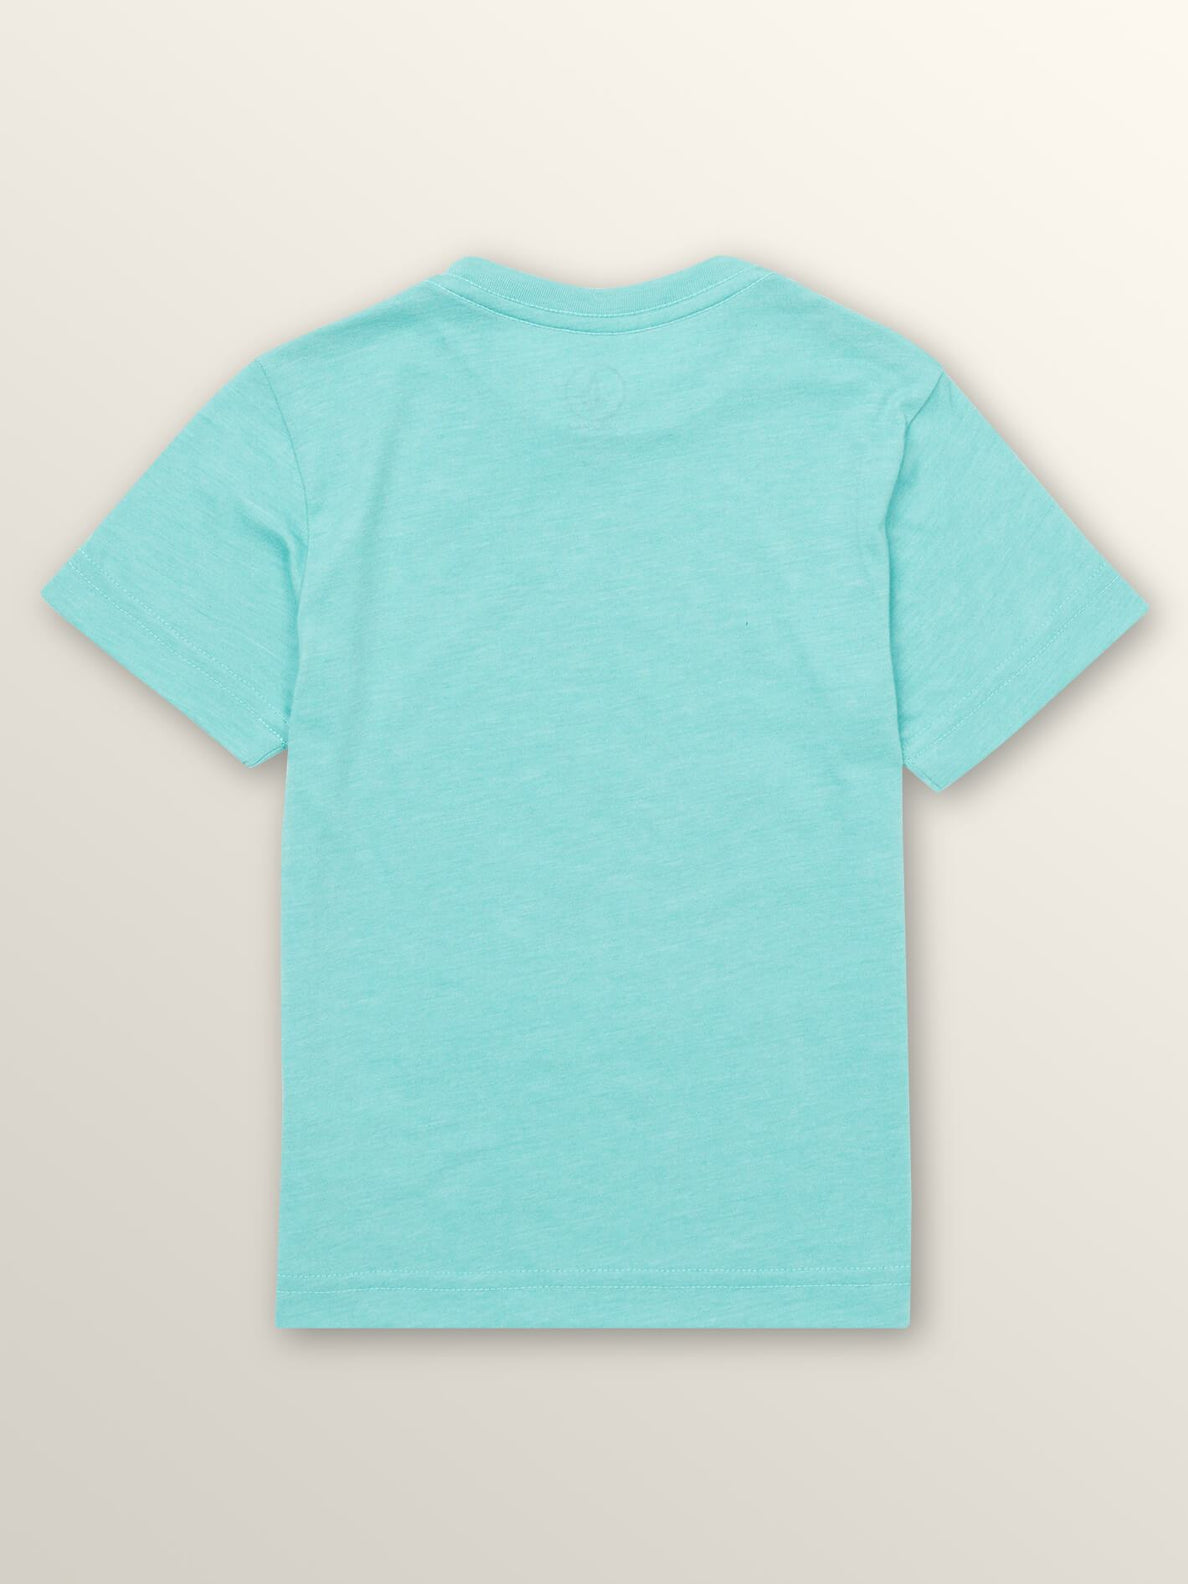 Little Boys In Fill Short Sleeve Tee In Turquoise, Back View